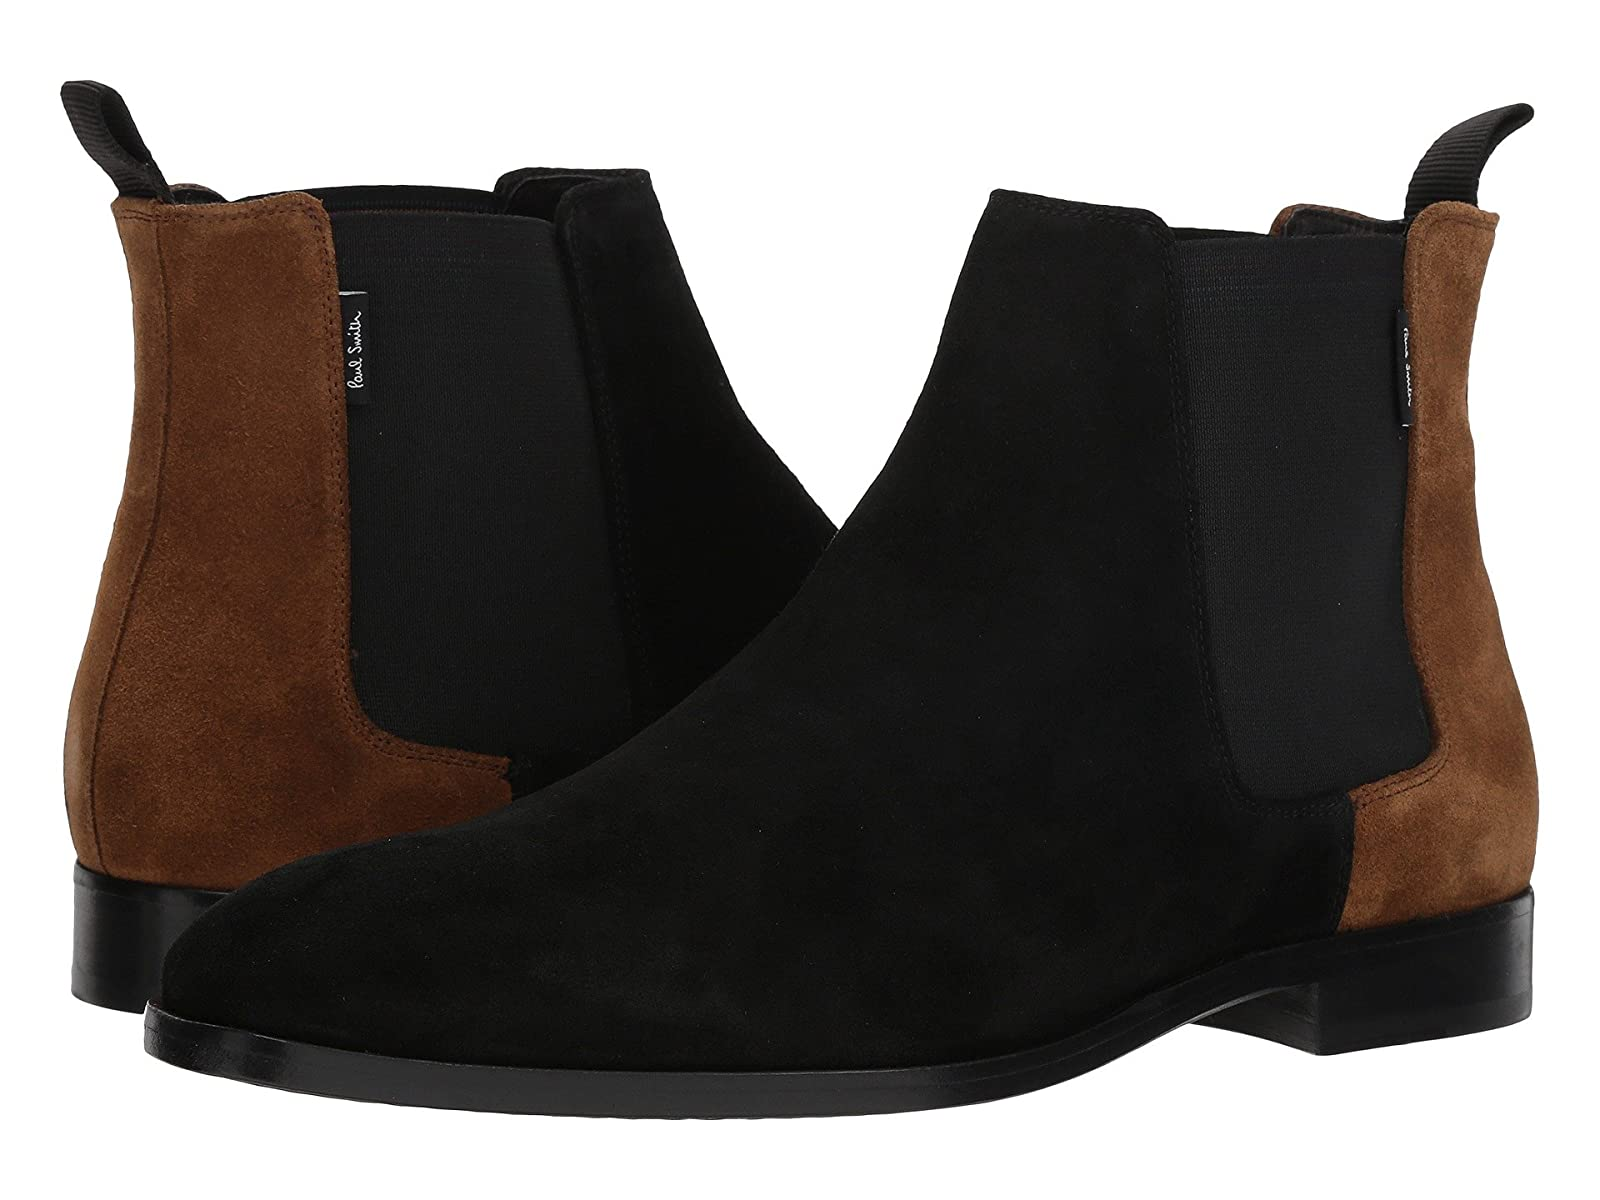 Paul Smith Gerald BootEconomical and quality shoes